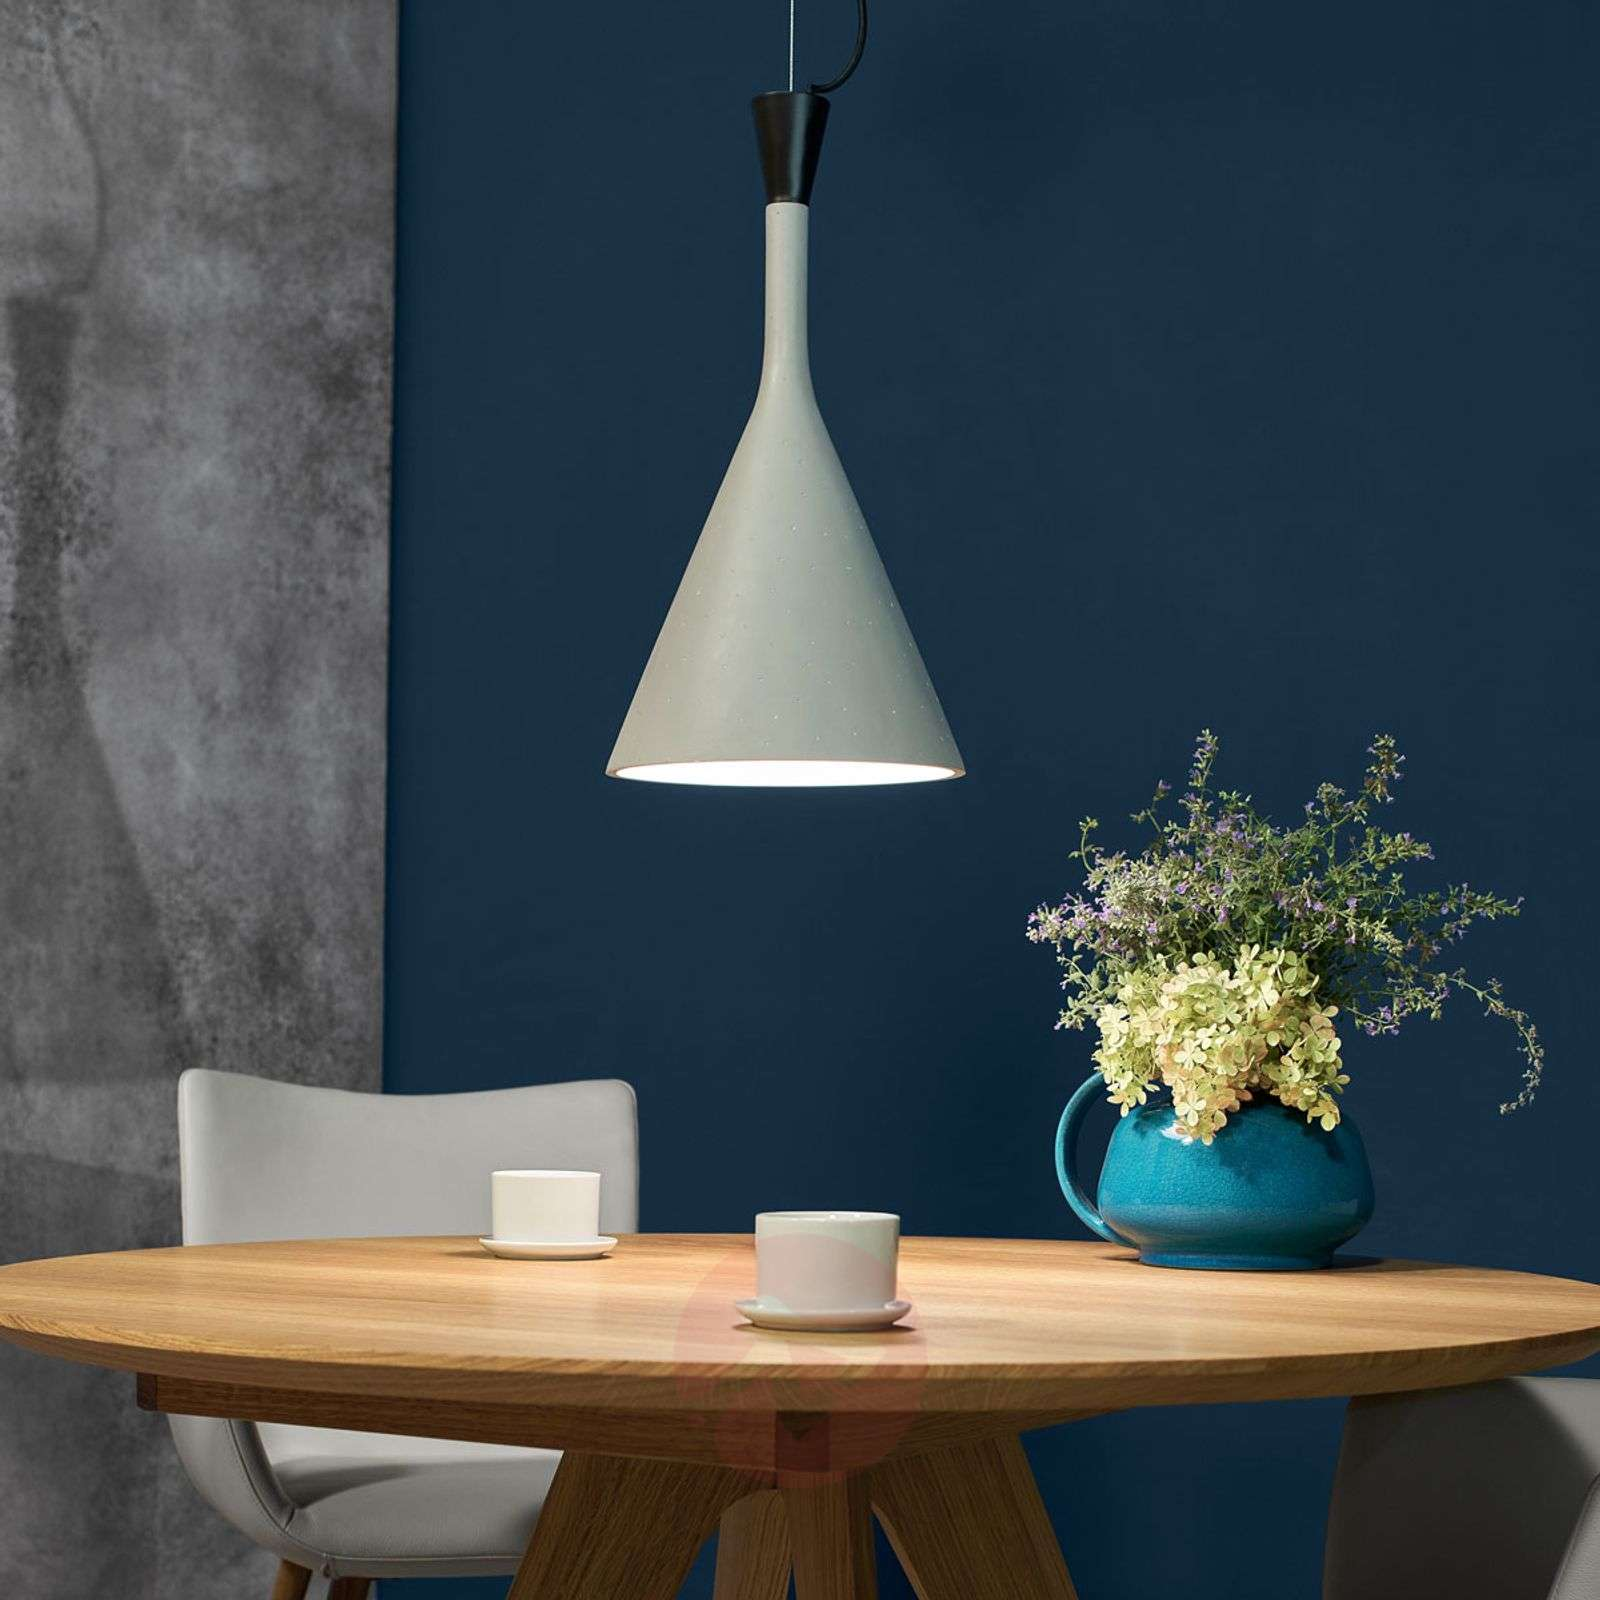 anina wright by honeytrend hanging coolest pendant lighting light industrial jac concrete interior lamps best design horsfall looking